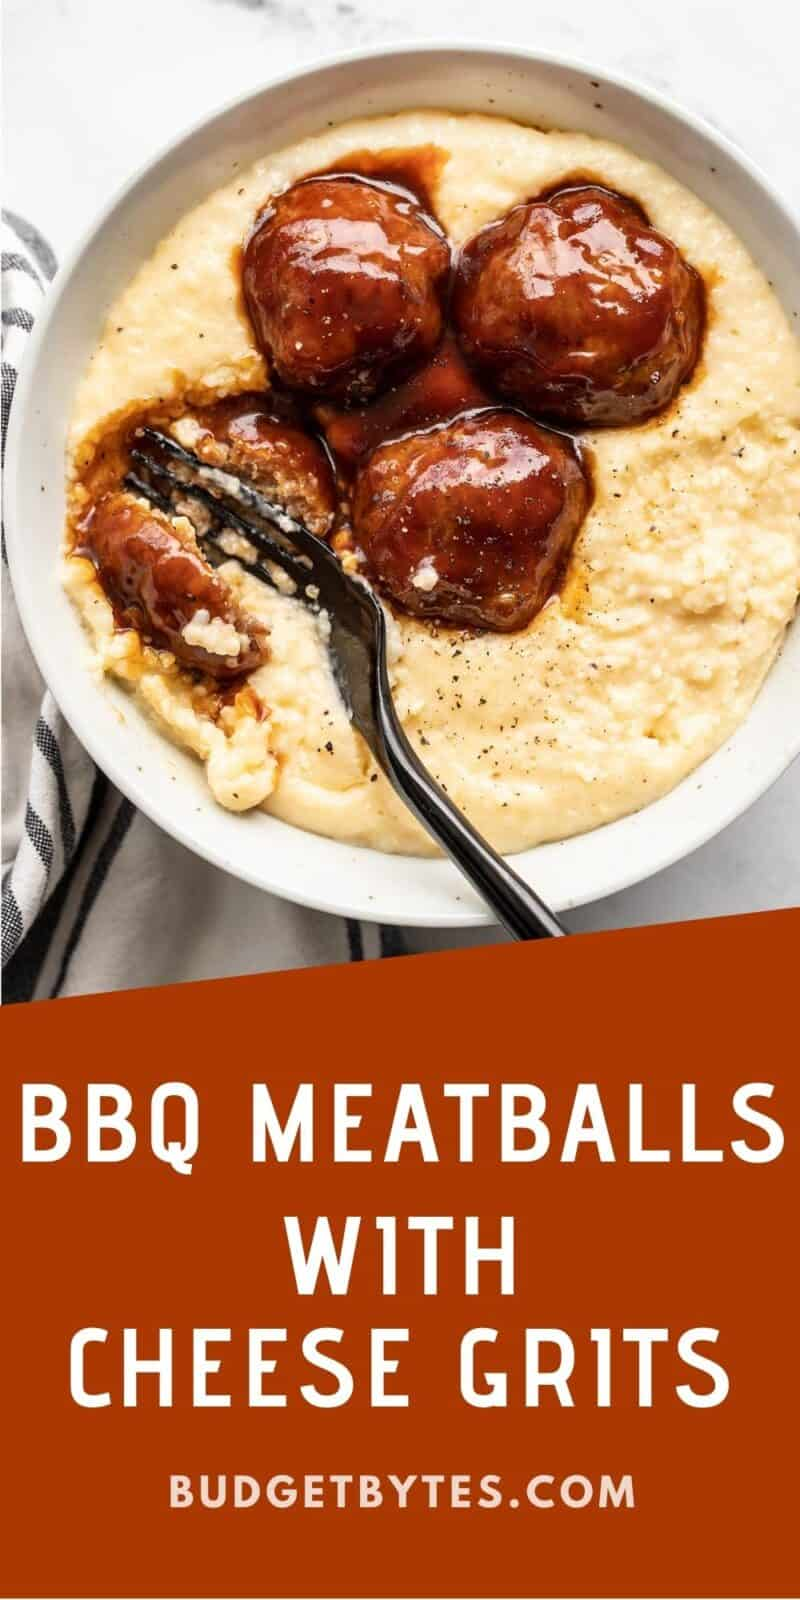 A fork cutting into a bbq meatball on a bed of cheese grits